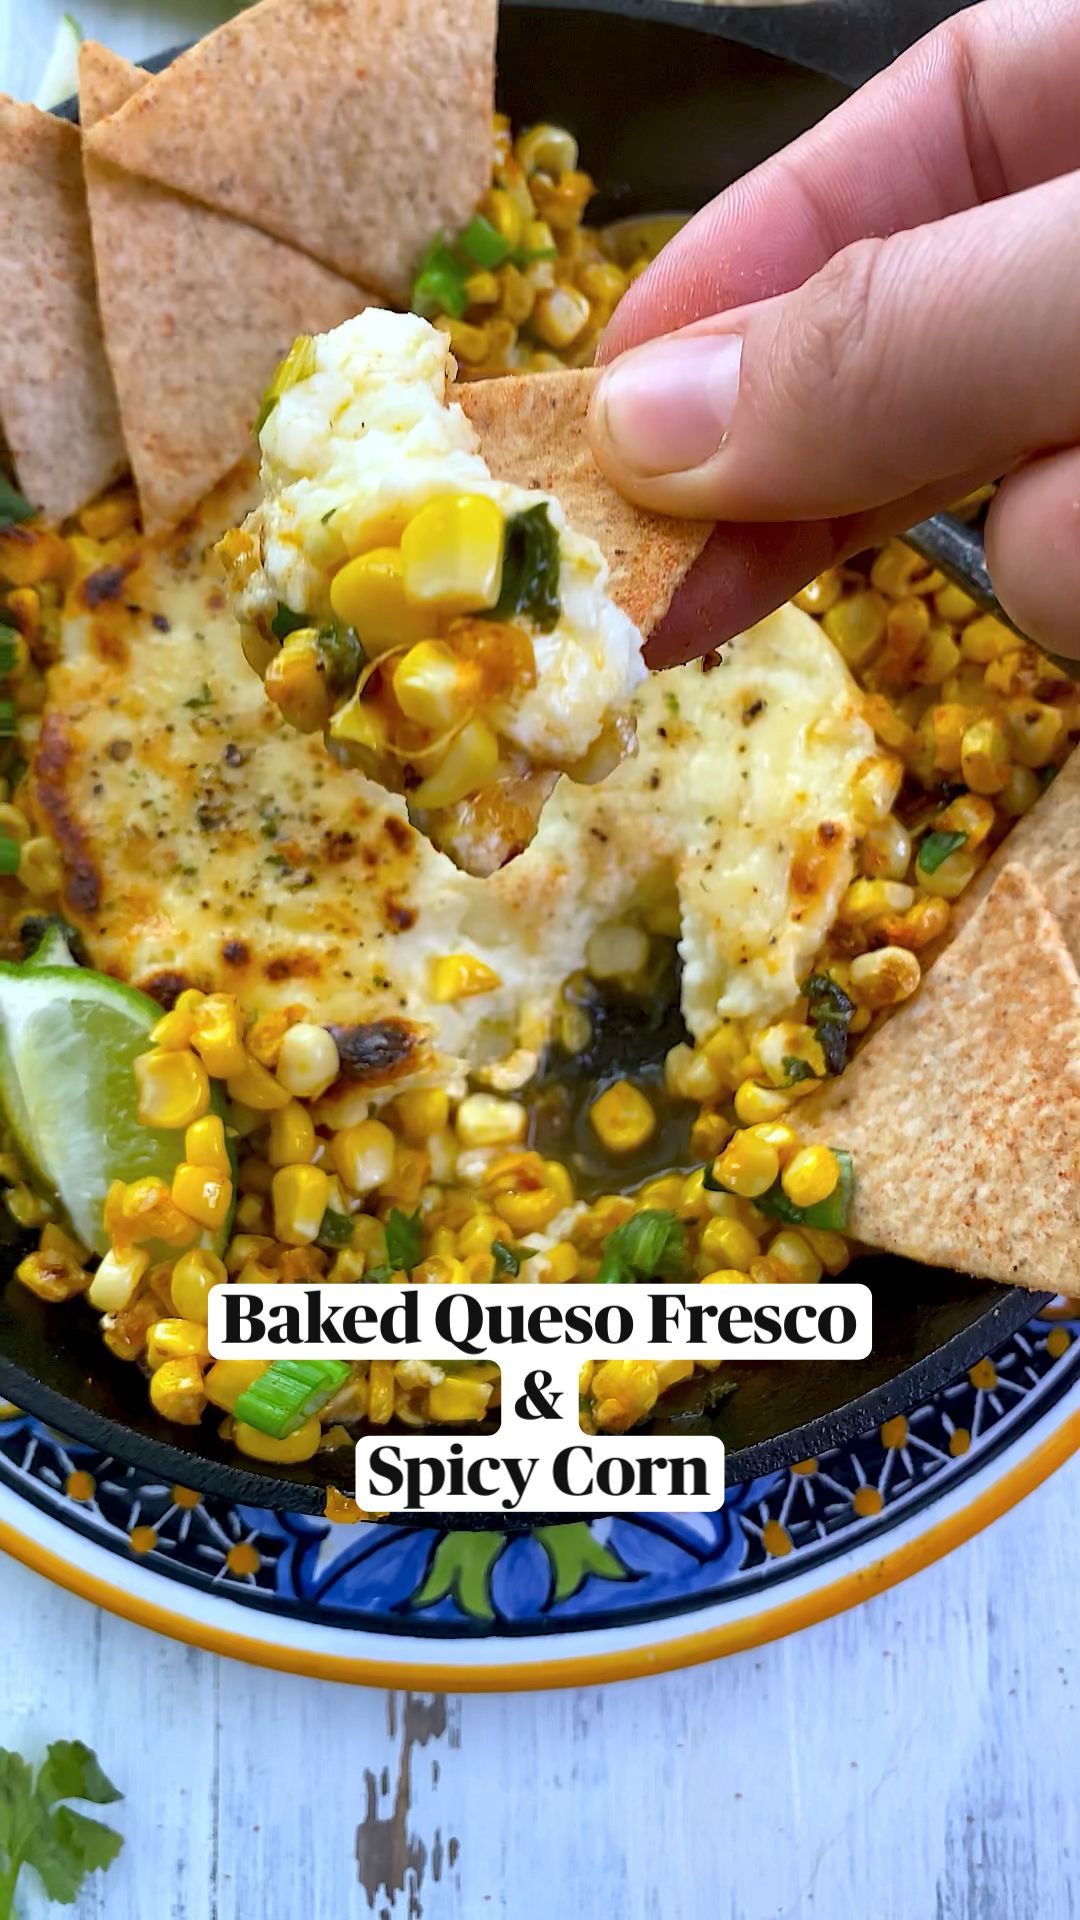 Baked Queso Fresco & Spicy Corn